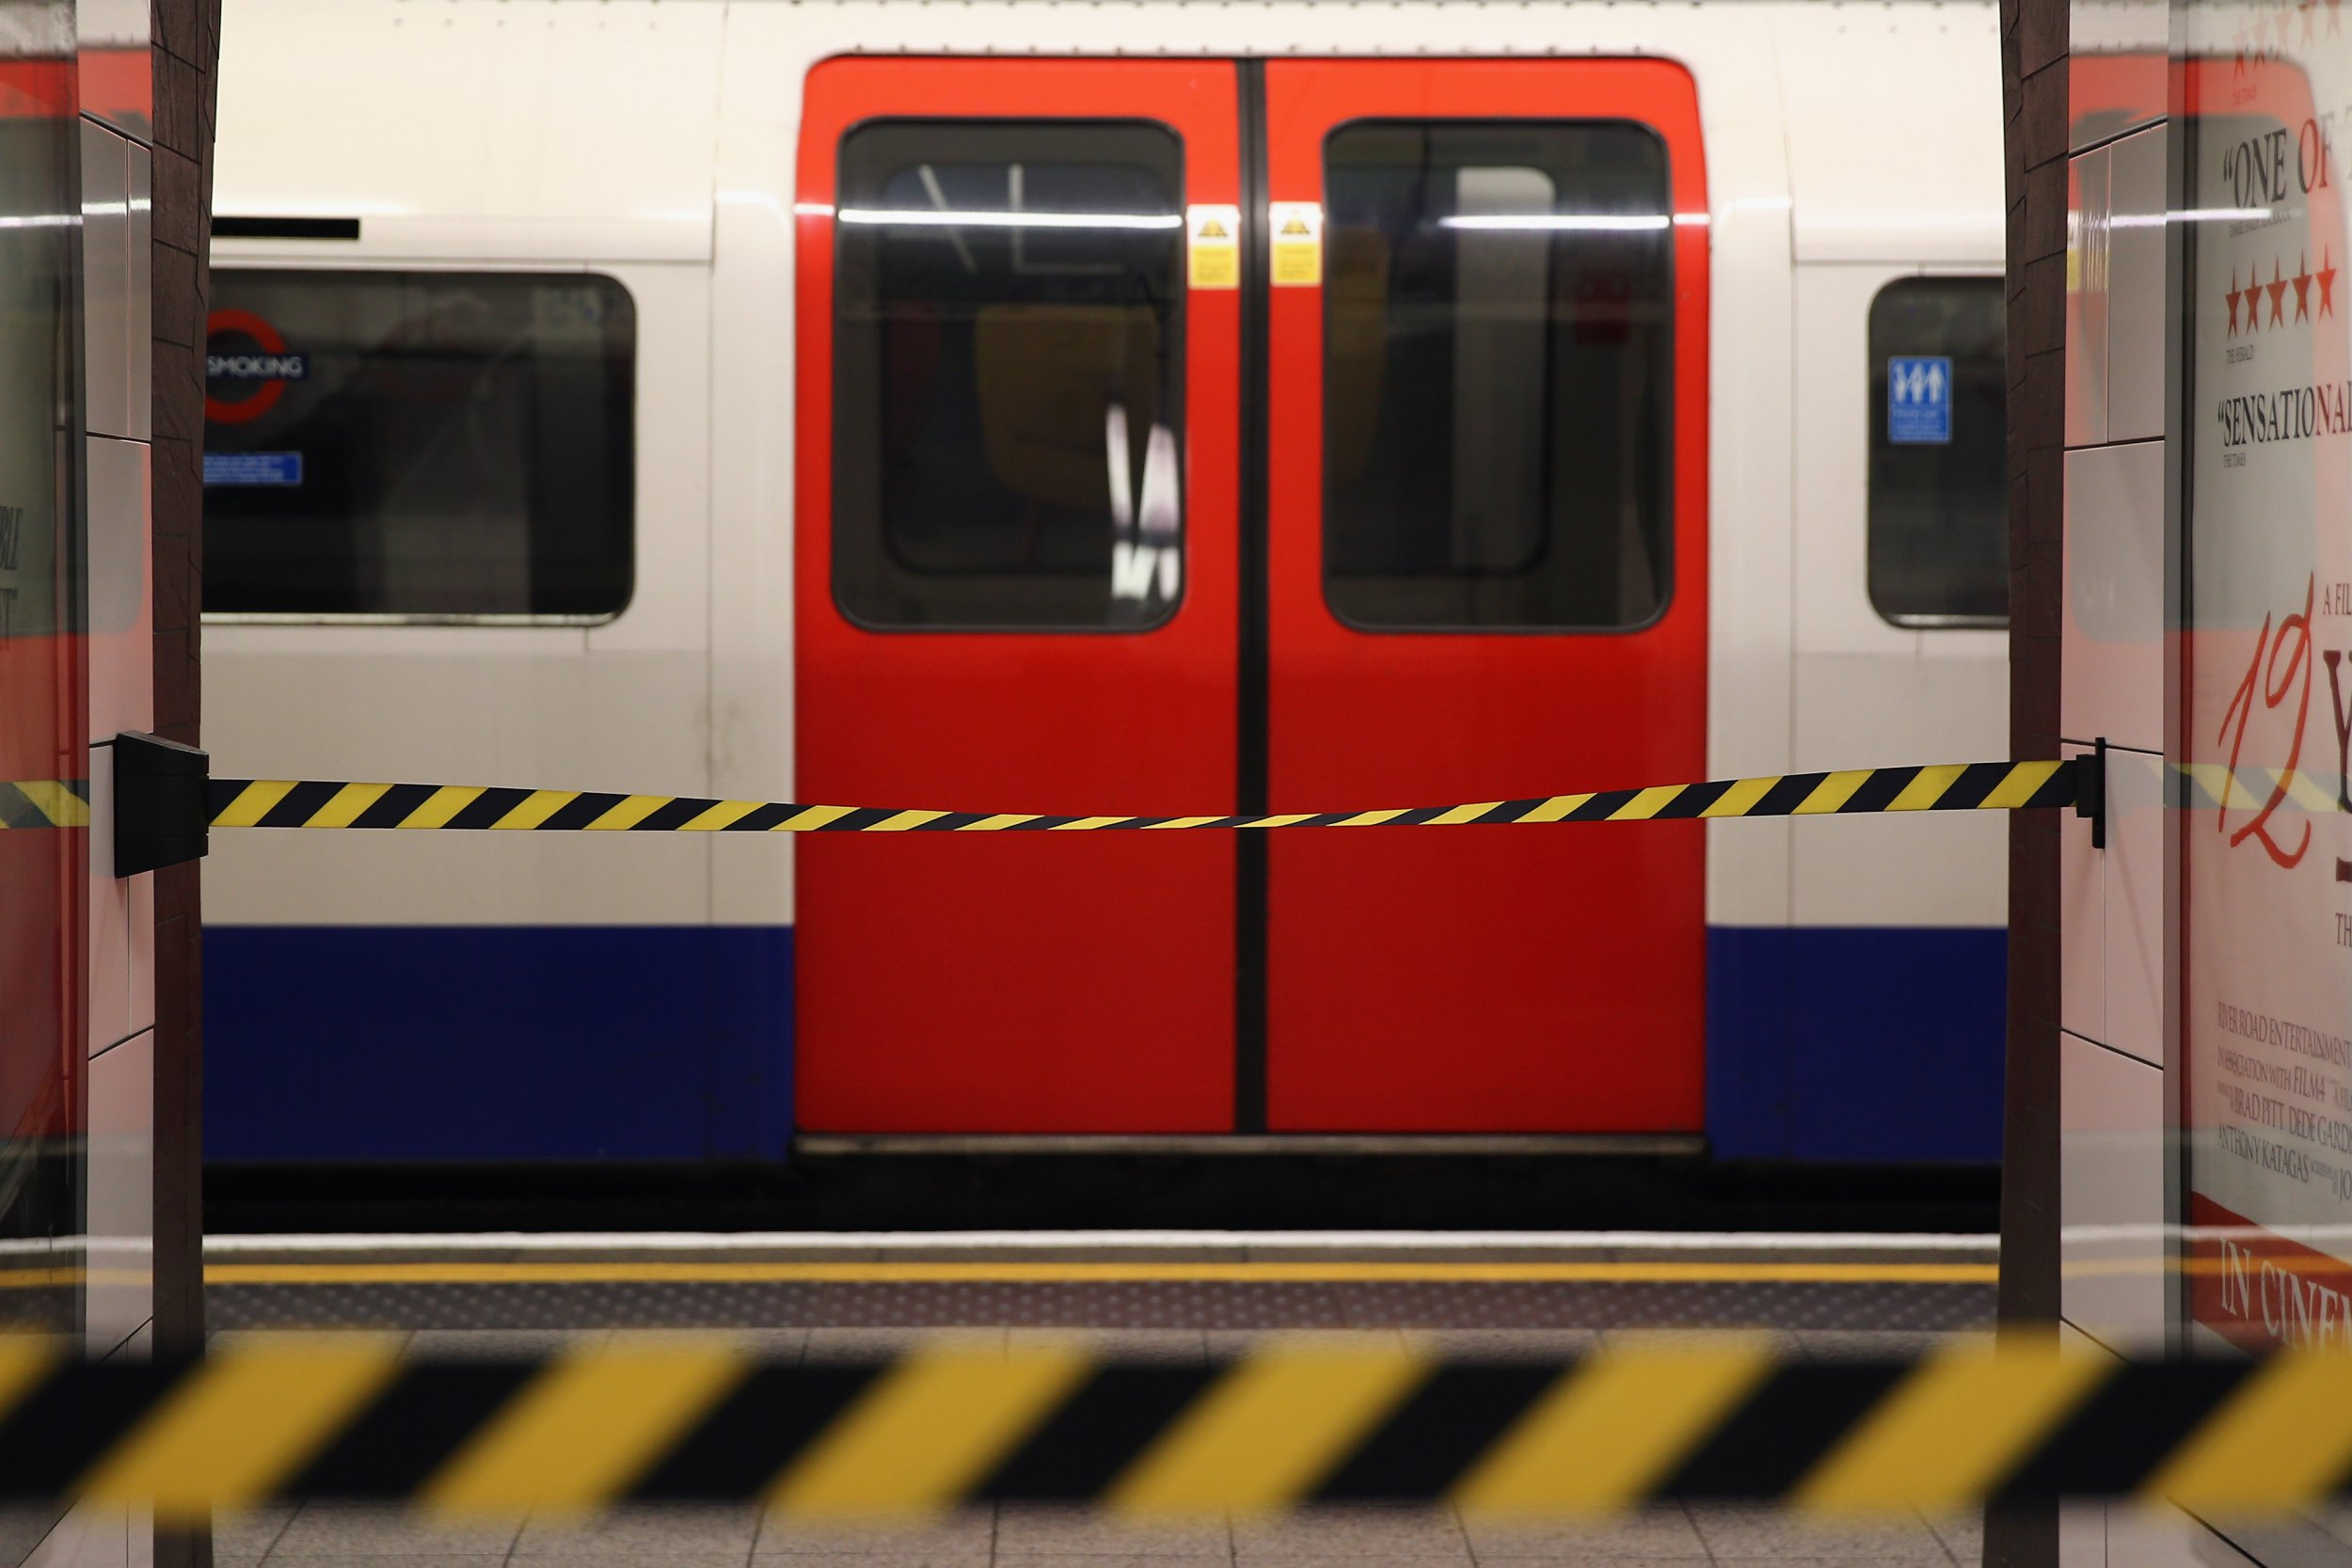 Central Line strike set for Friday and Saturday has been suspended, Bakerloo Line walkout cancelled